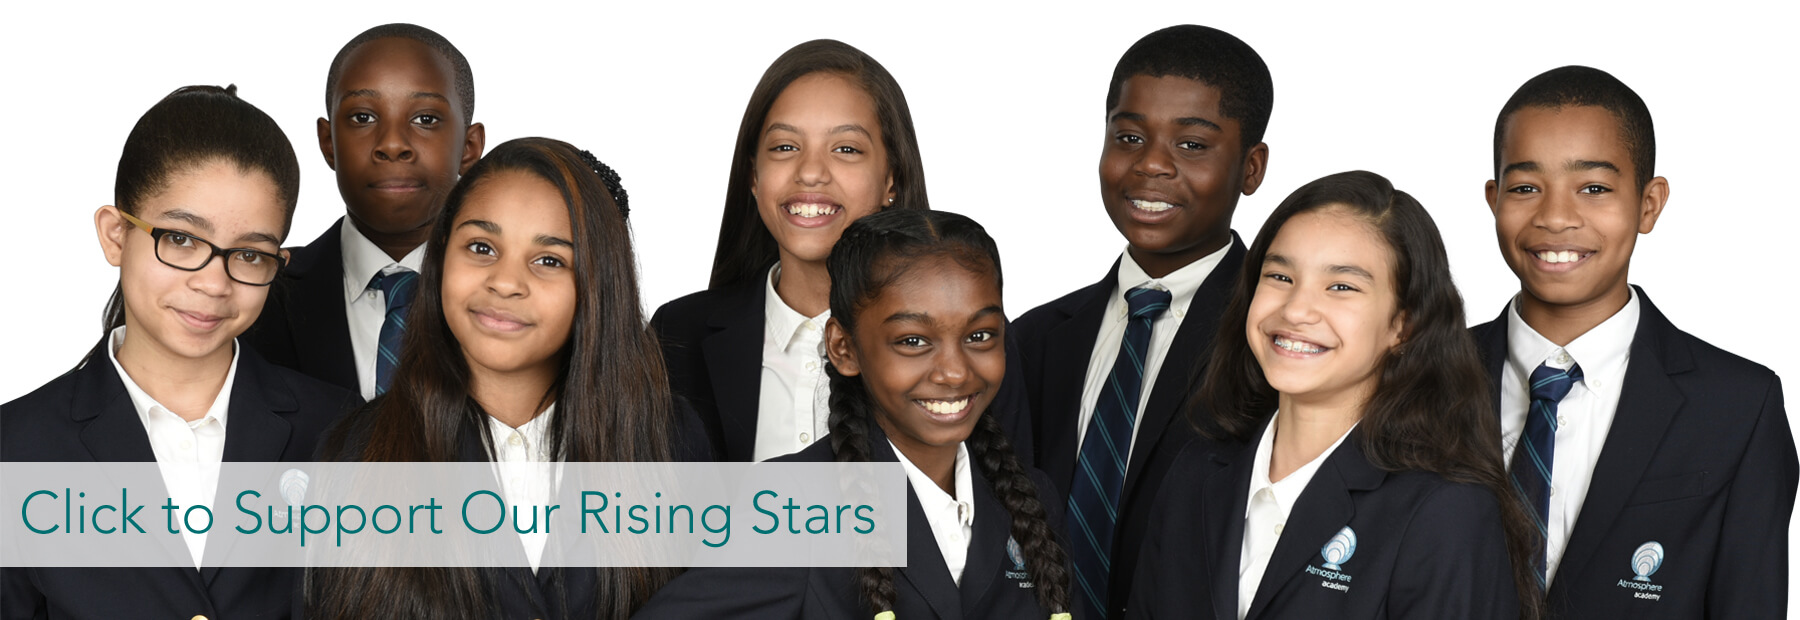 Support Our Rising Stars